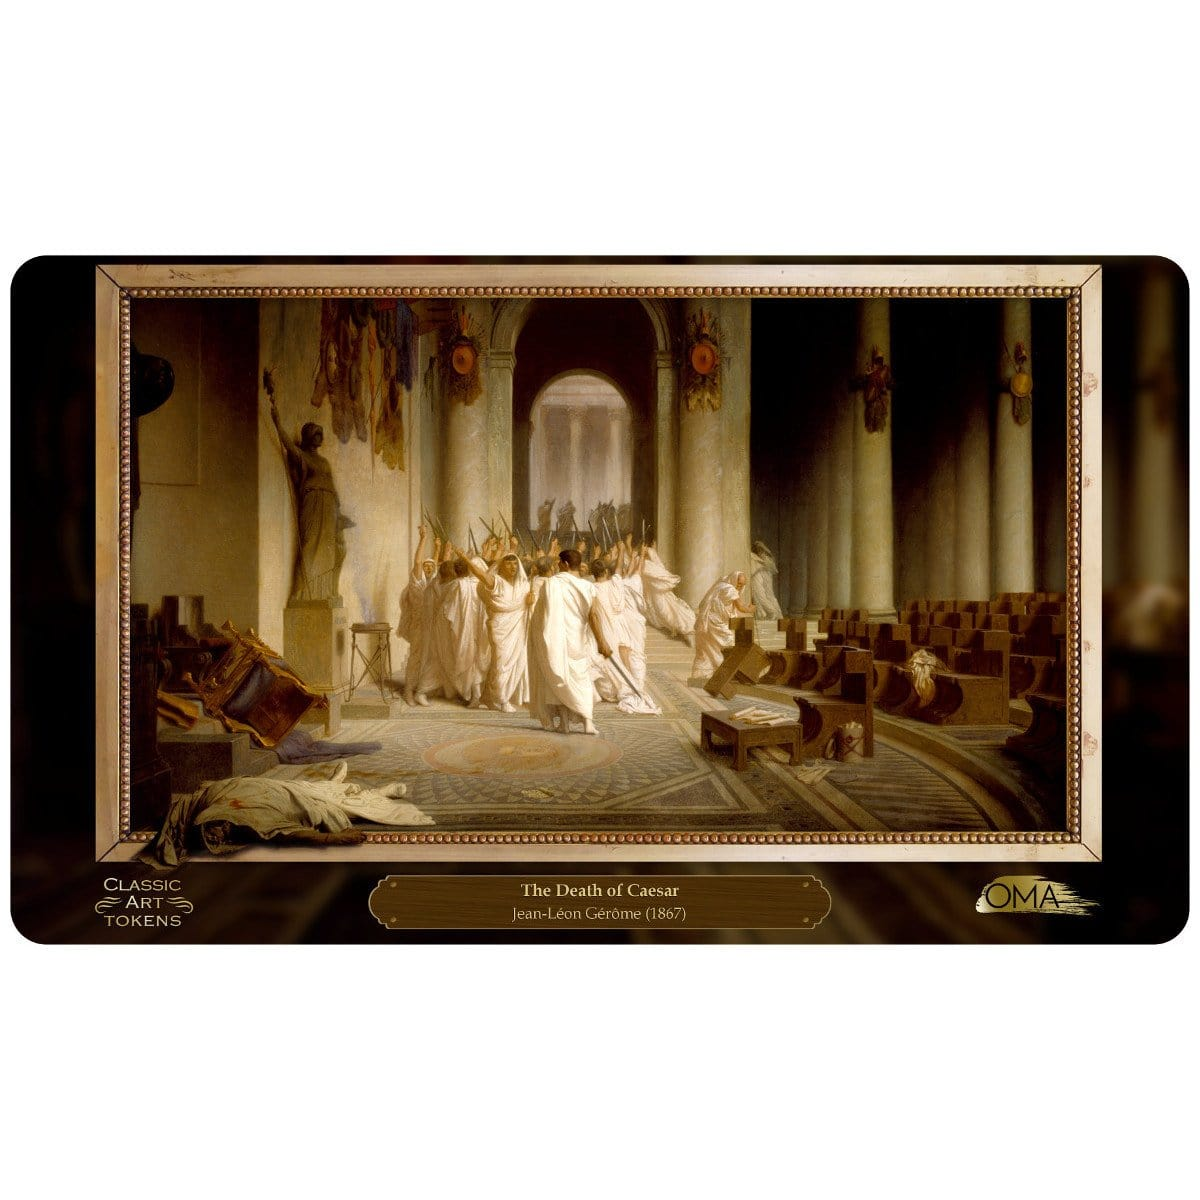 Assassin Playmat by Jean-Léon Gérôme - Playmat - Original Magic Art - Accessories for Magic the Gathering and other card games